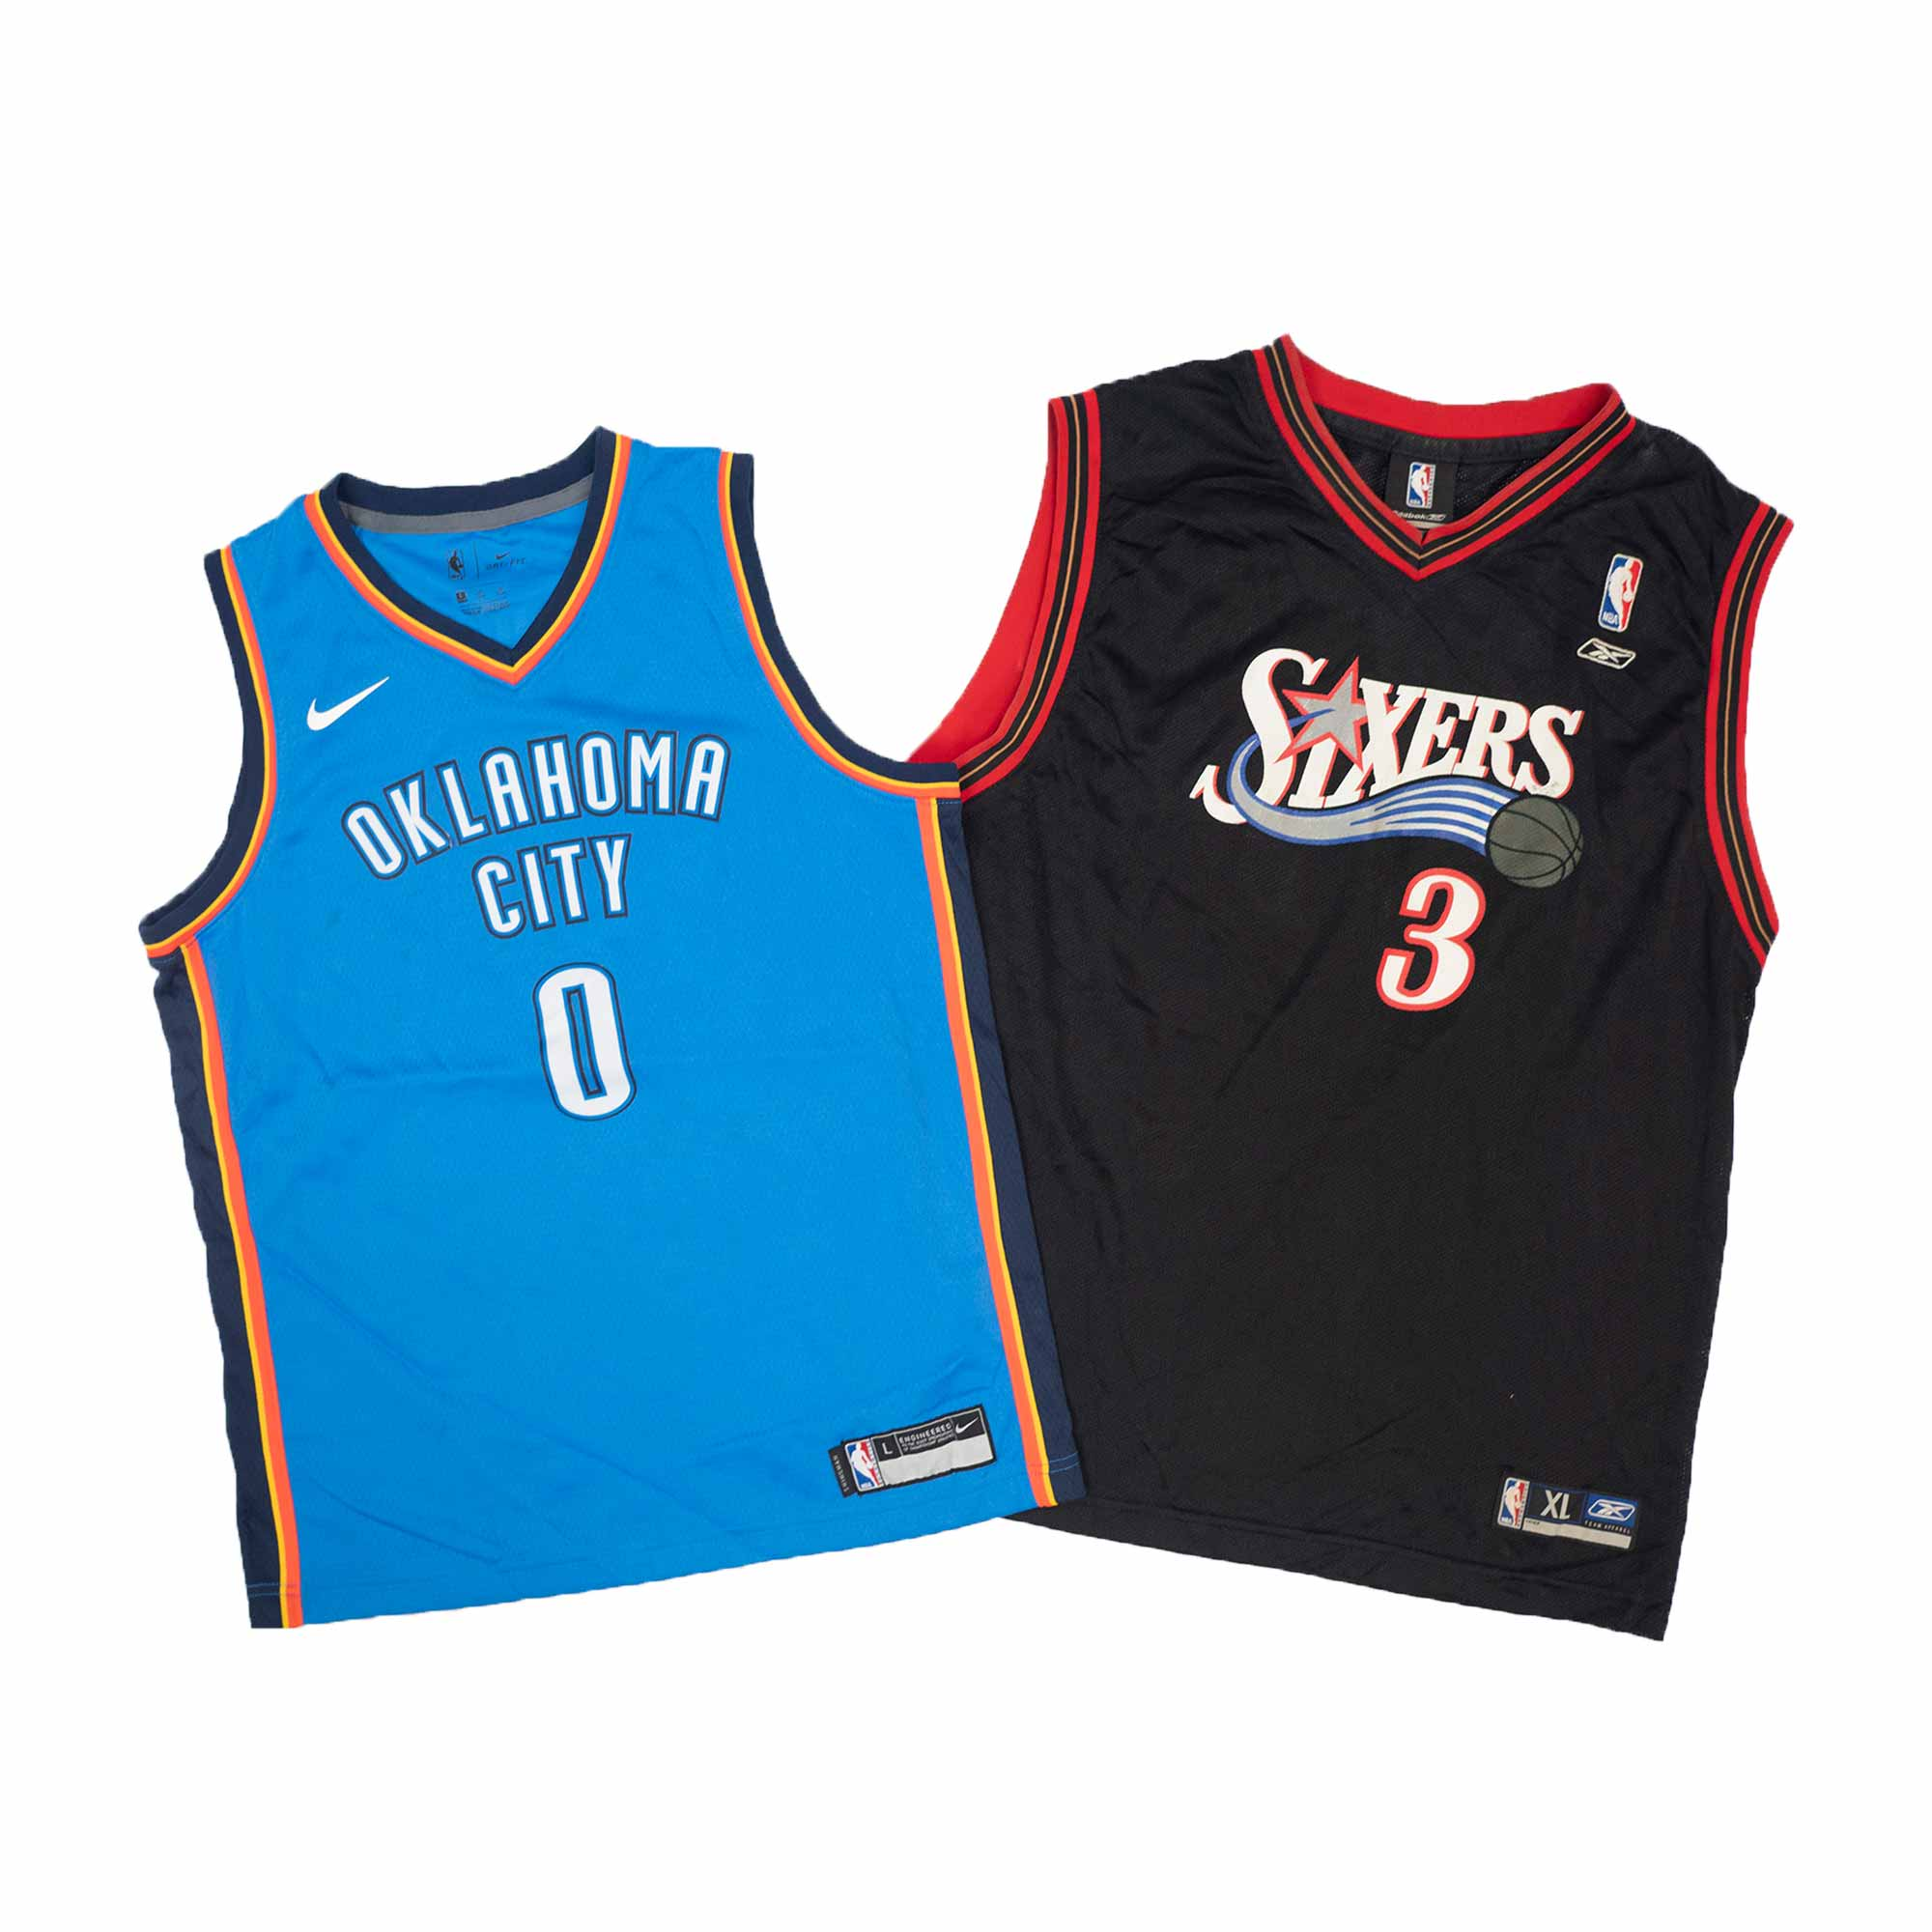 Mystery Box NBA Jerseys